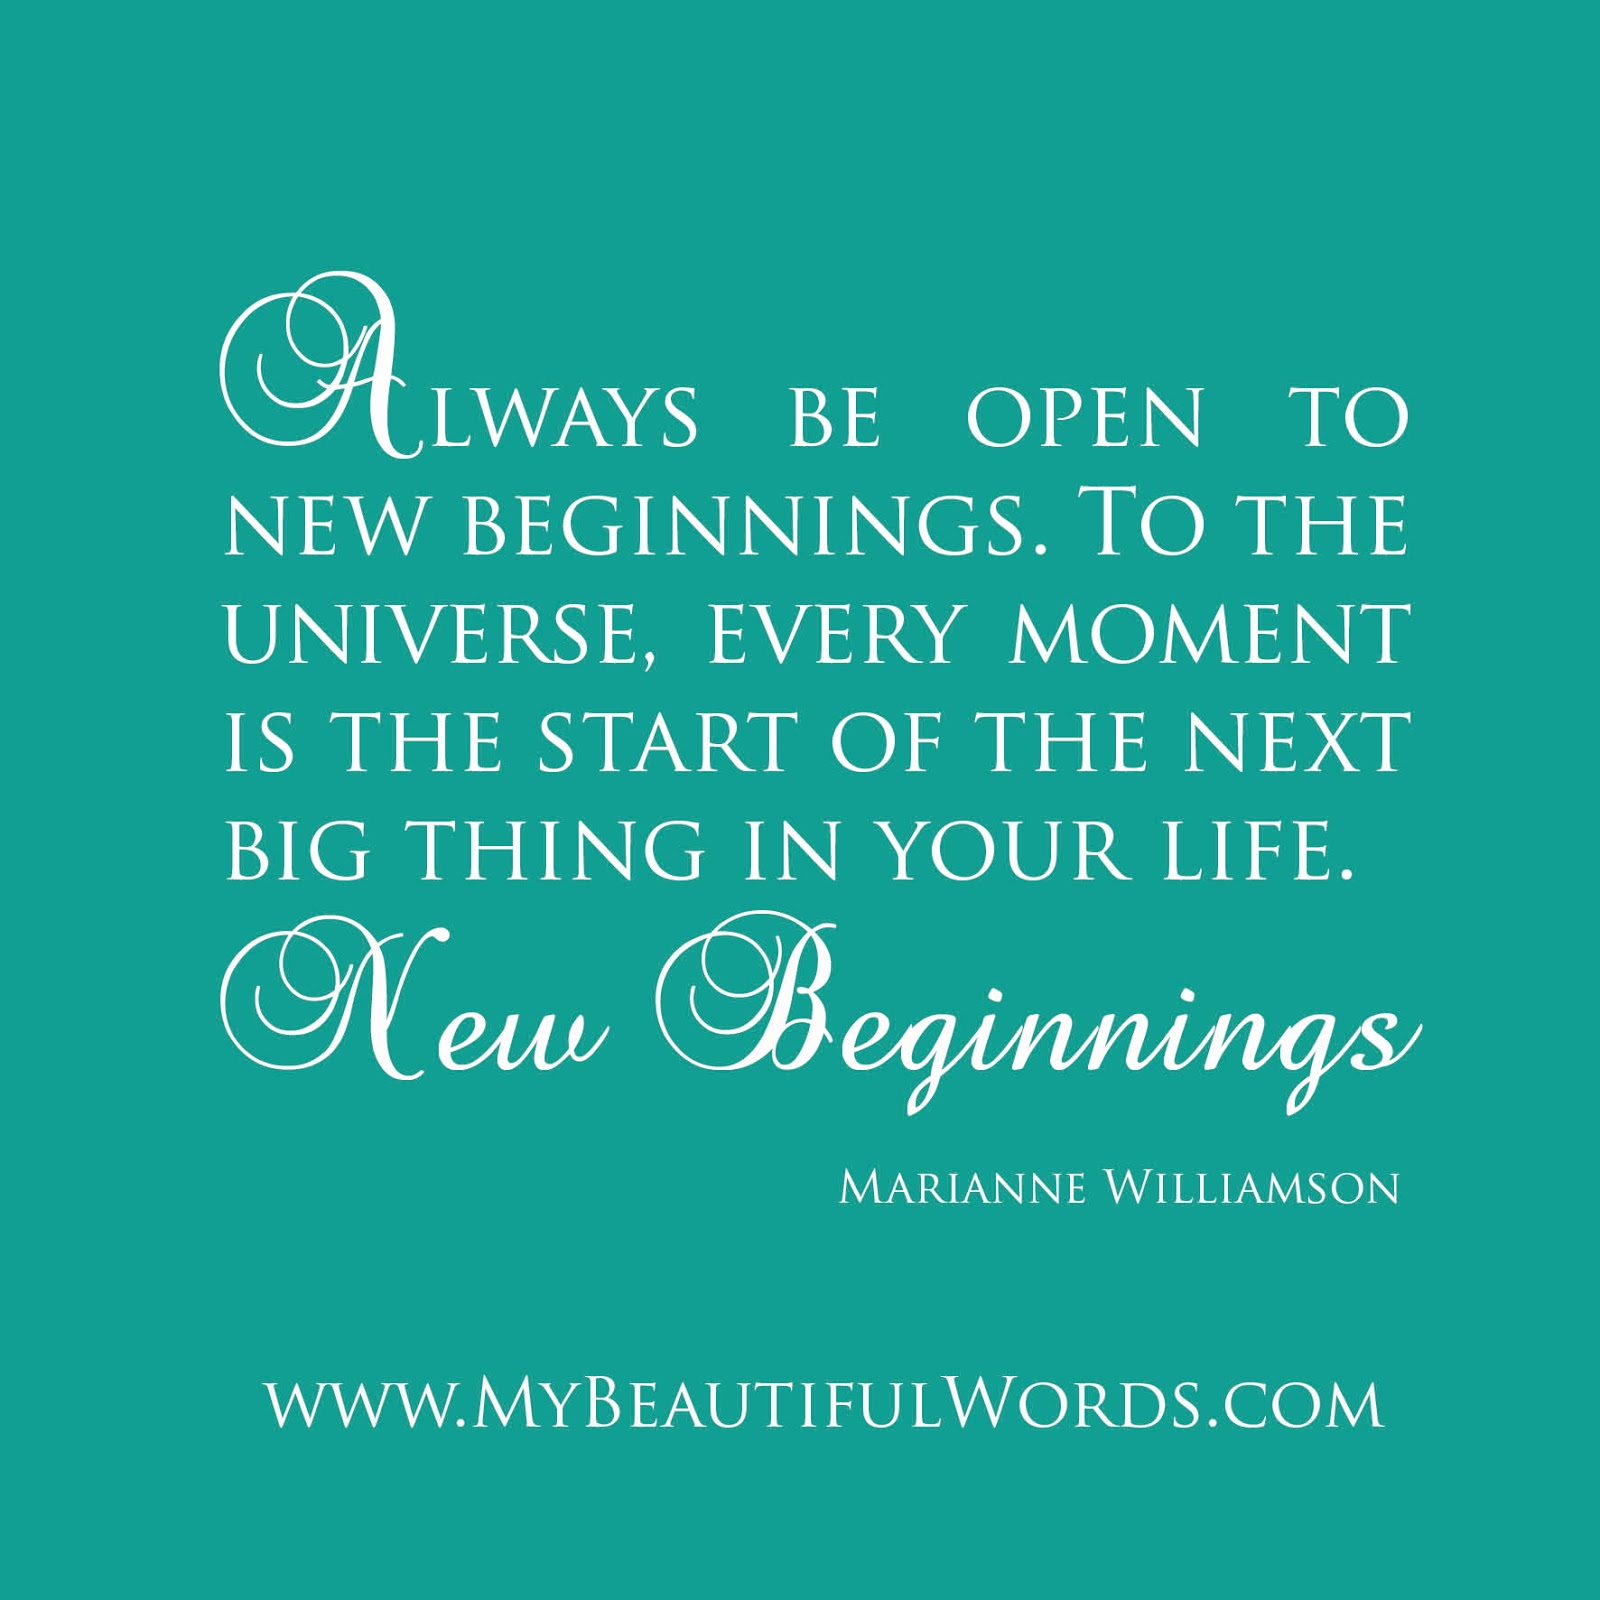 Quotes About New Life: In Your Life New Beginnings Quotes. QuotesGram